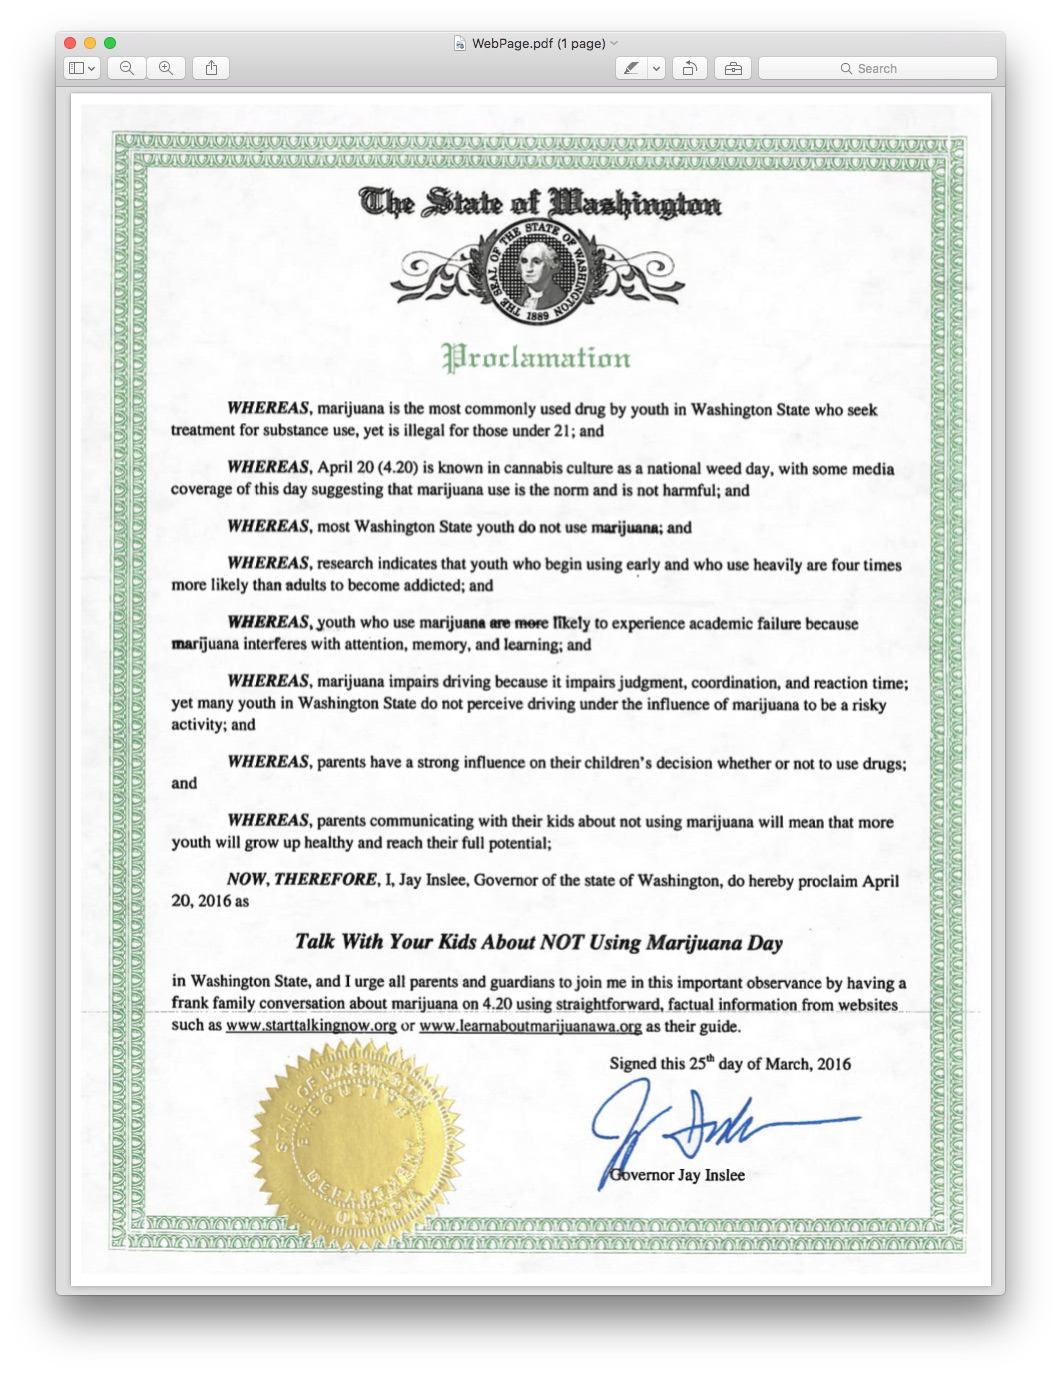 Washington state government for kids - Proclamation 4 20